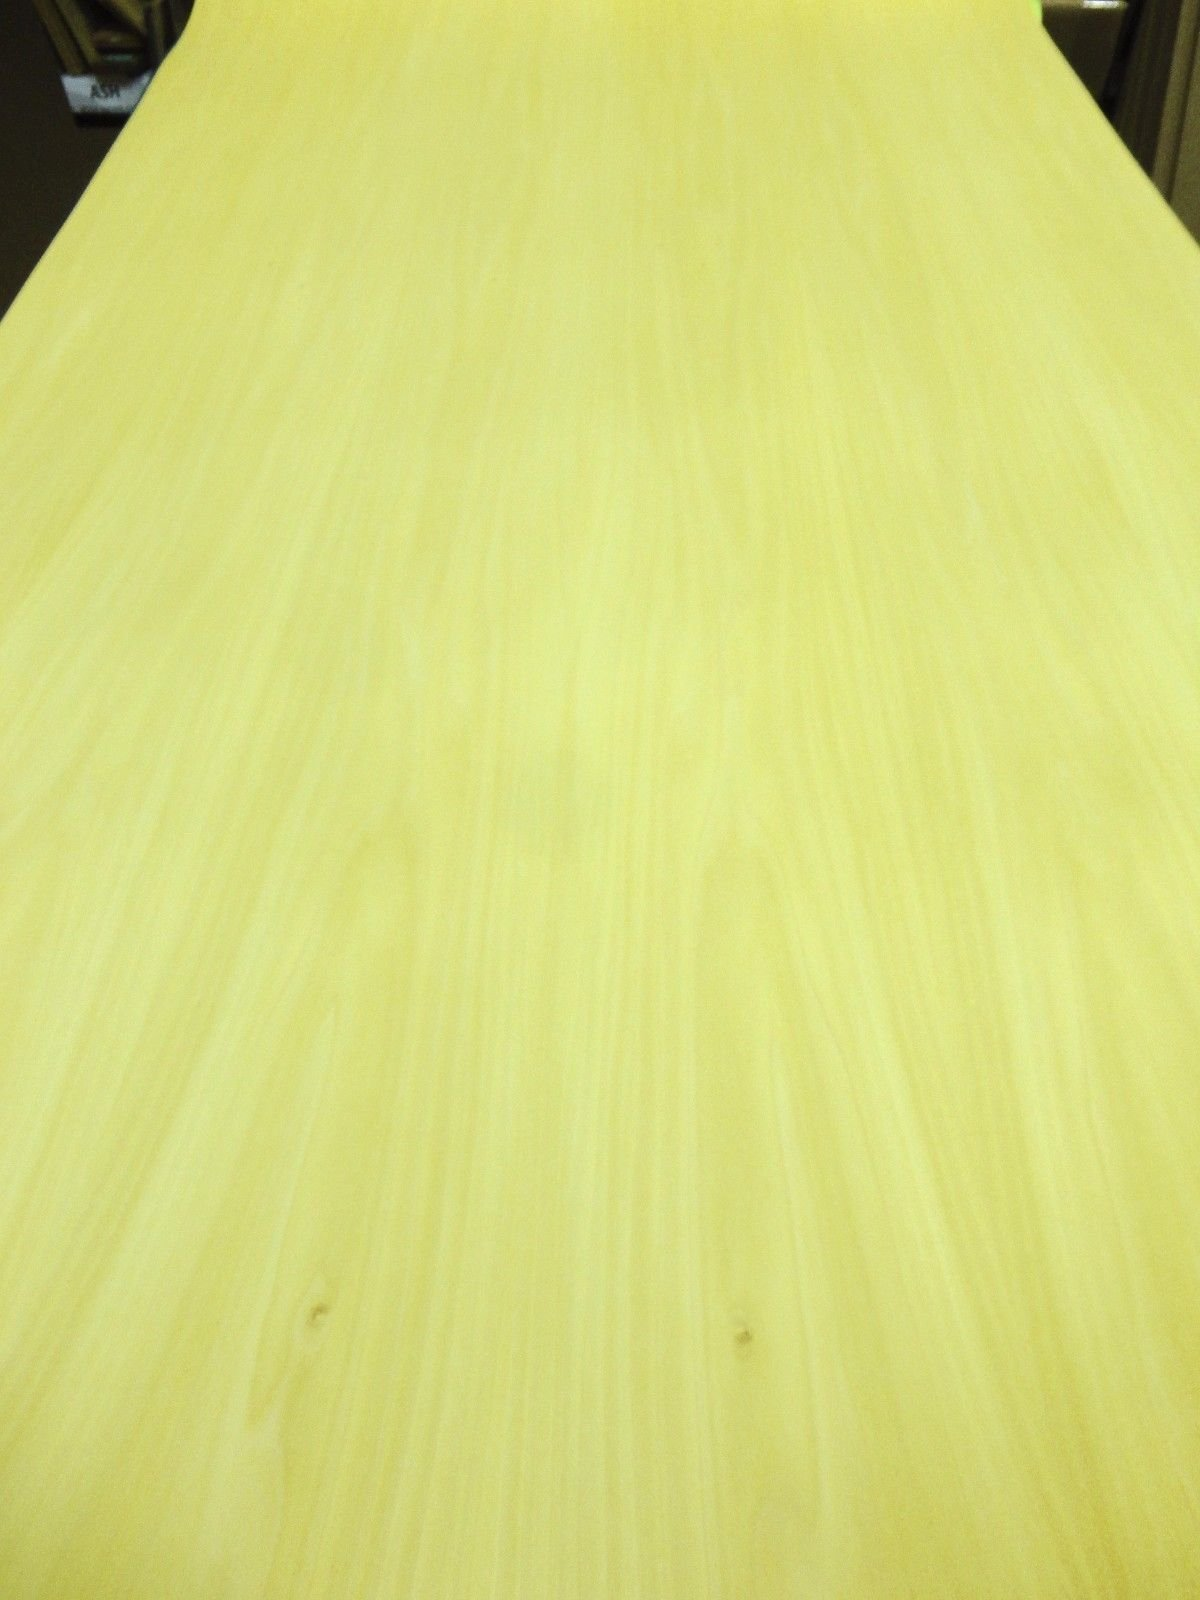 Yellow Poplar Dyed wood veneer sheet 48'' x 96'' with paper backer 1/40'' thickness